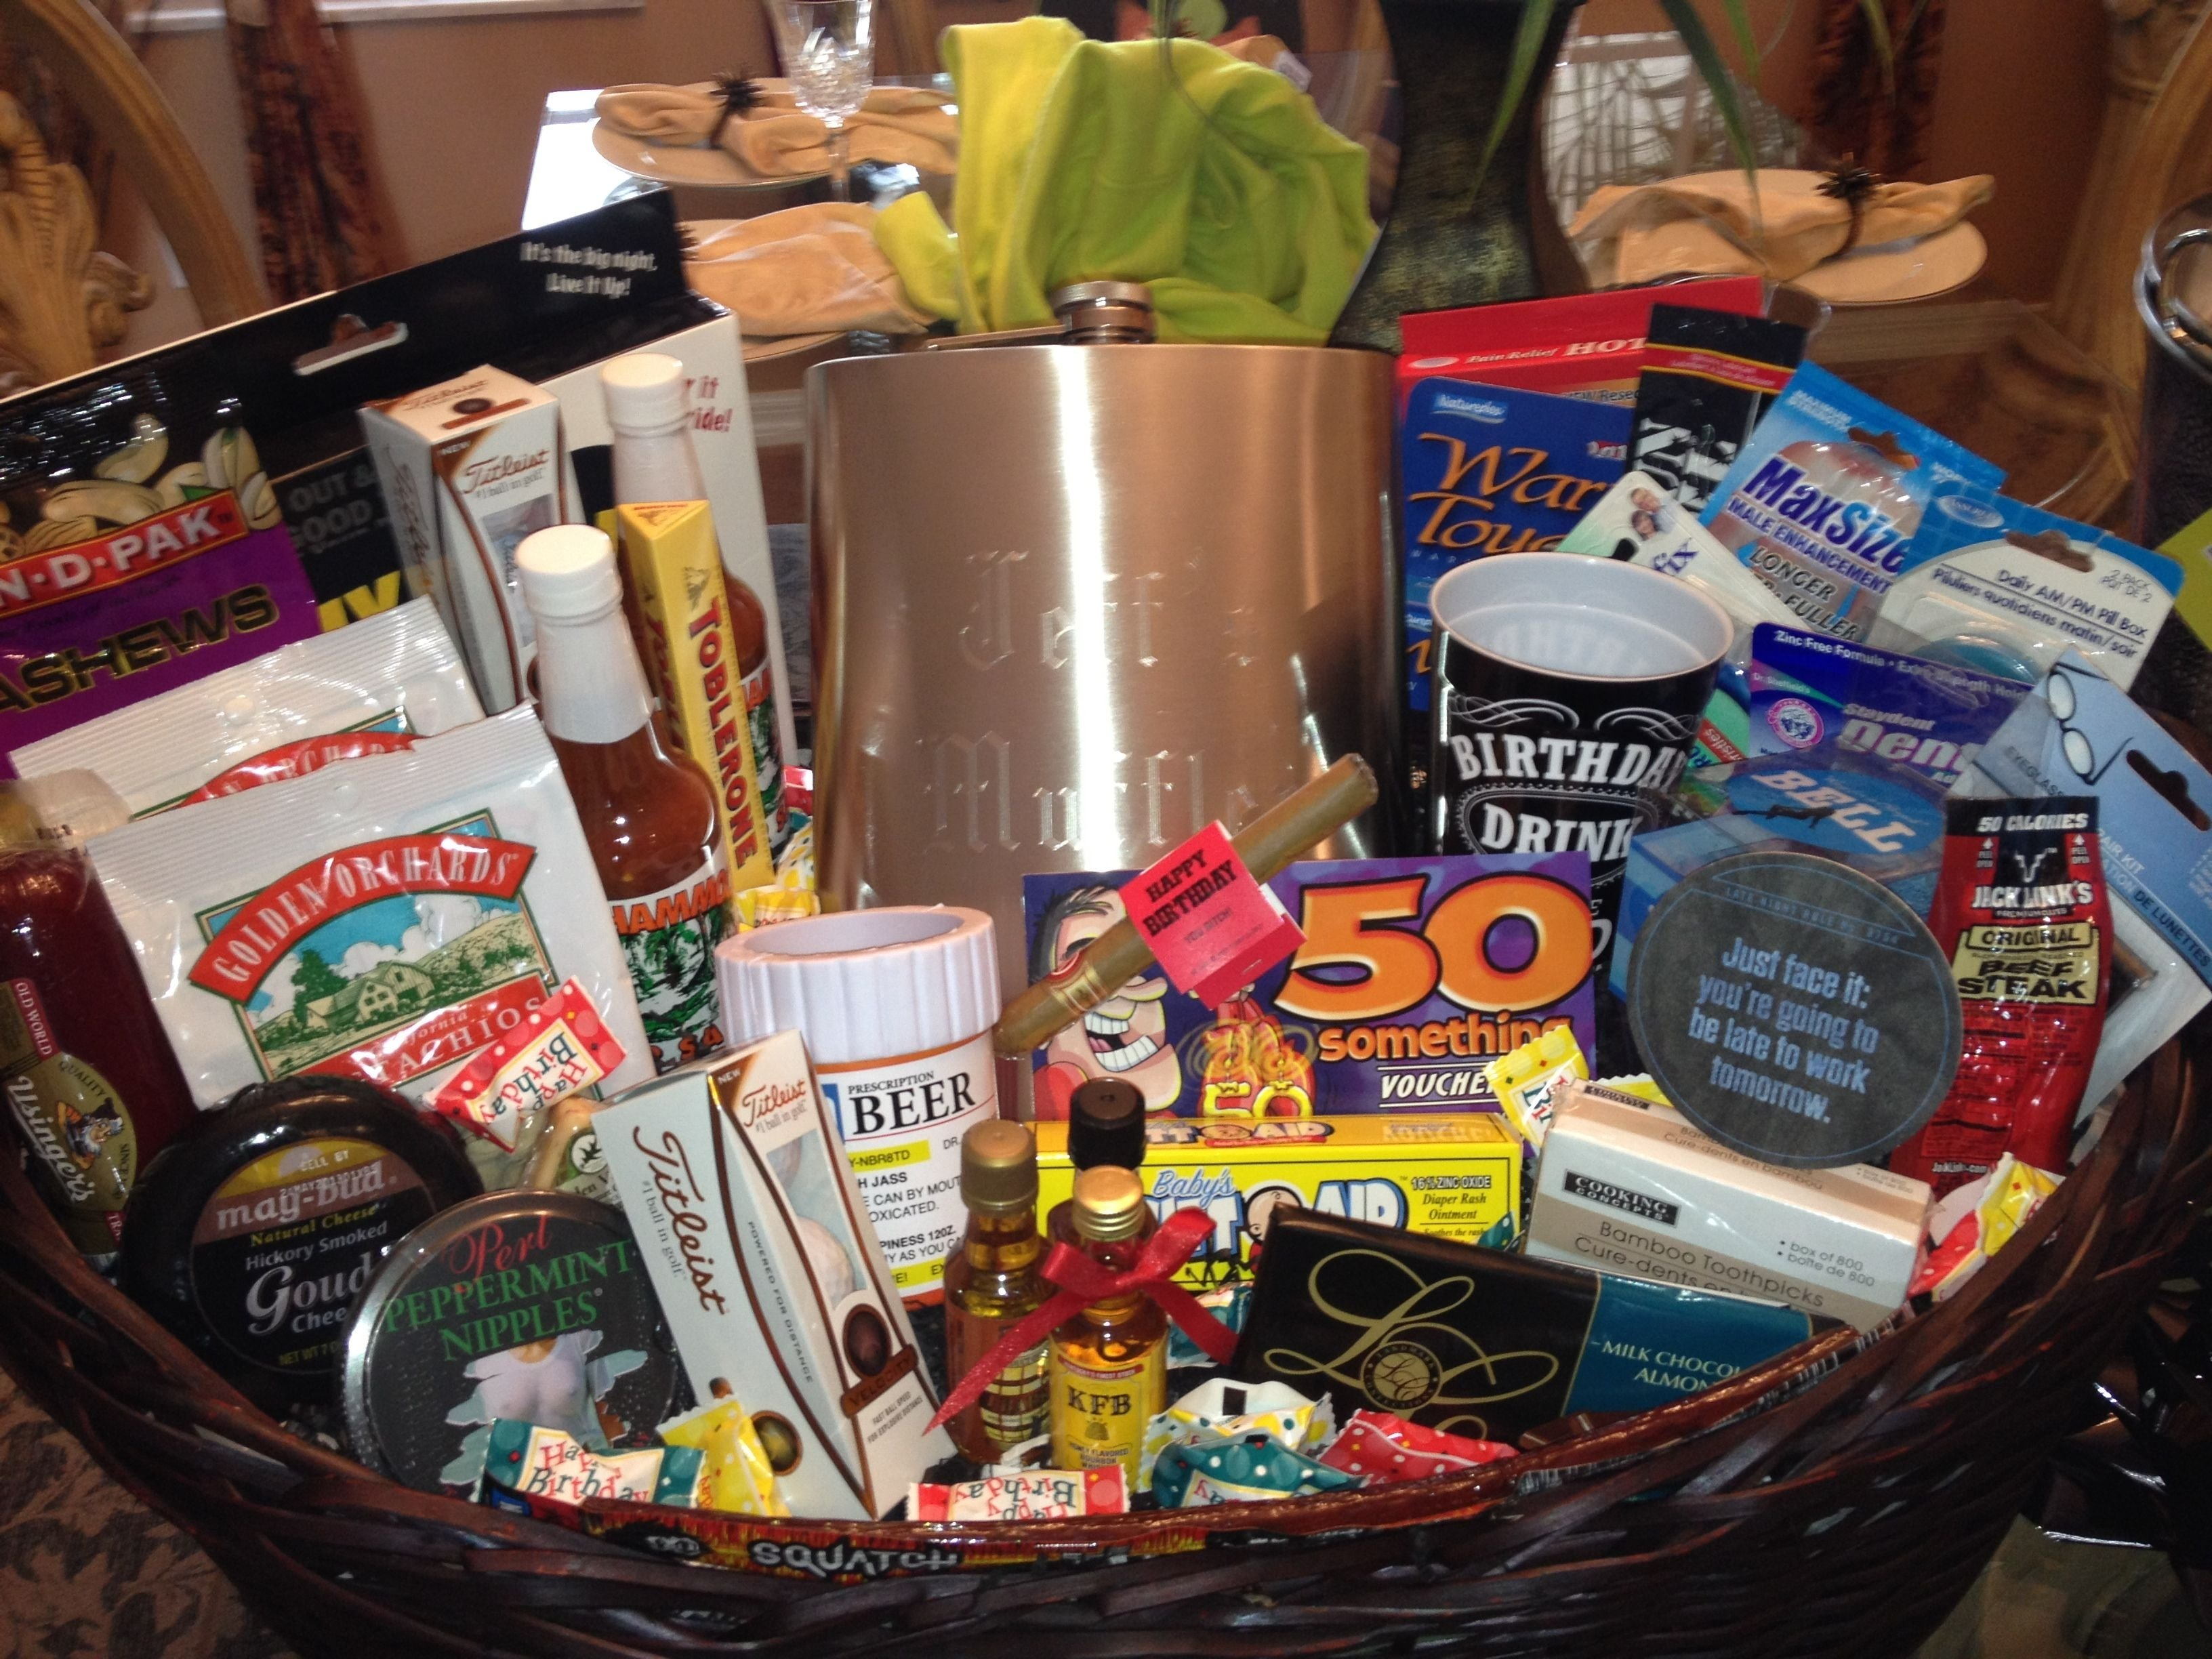 50th birthday gift basket for him | 50th birthday gift basketw